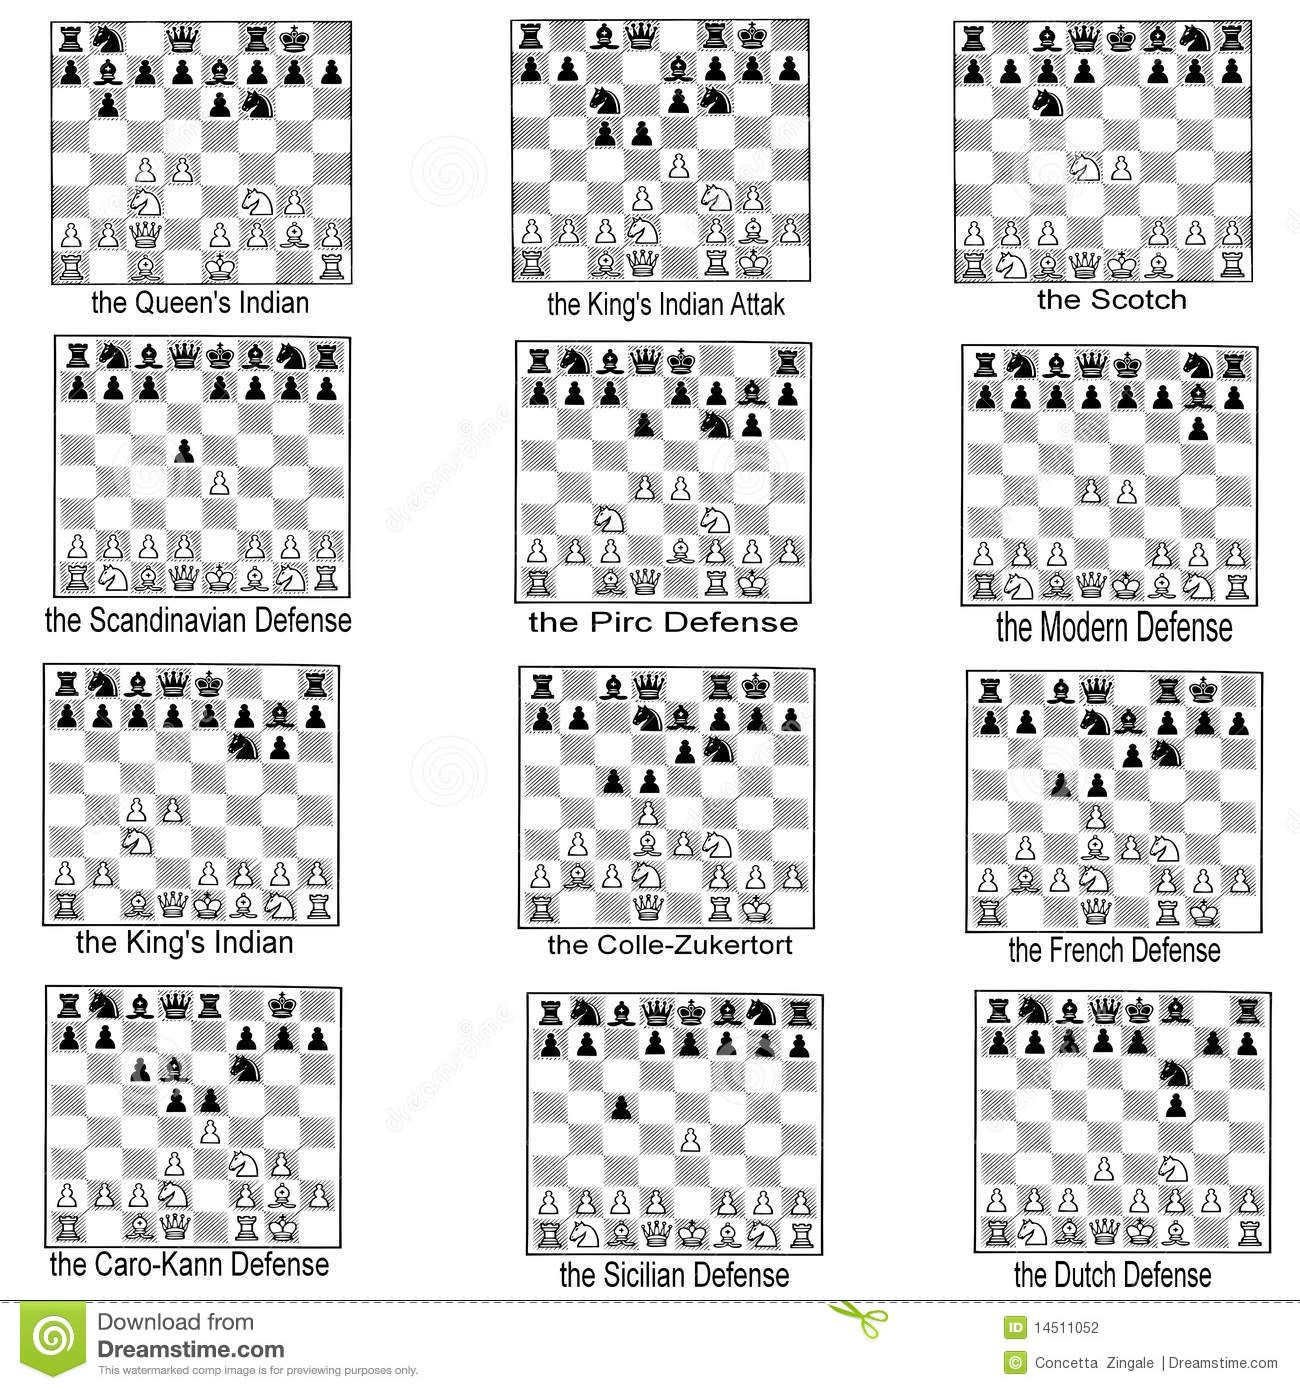 Collection Of Chess Openings Download From Over 62 Million High Quality Stock Photos Images Vectors Sign Up For Chess Strategies Chess Tricks Chess Moves